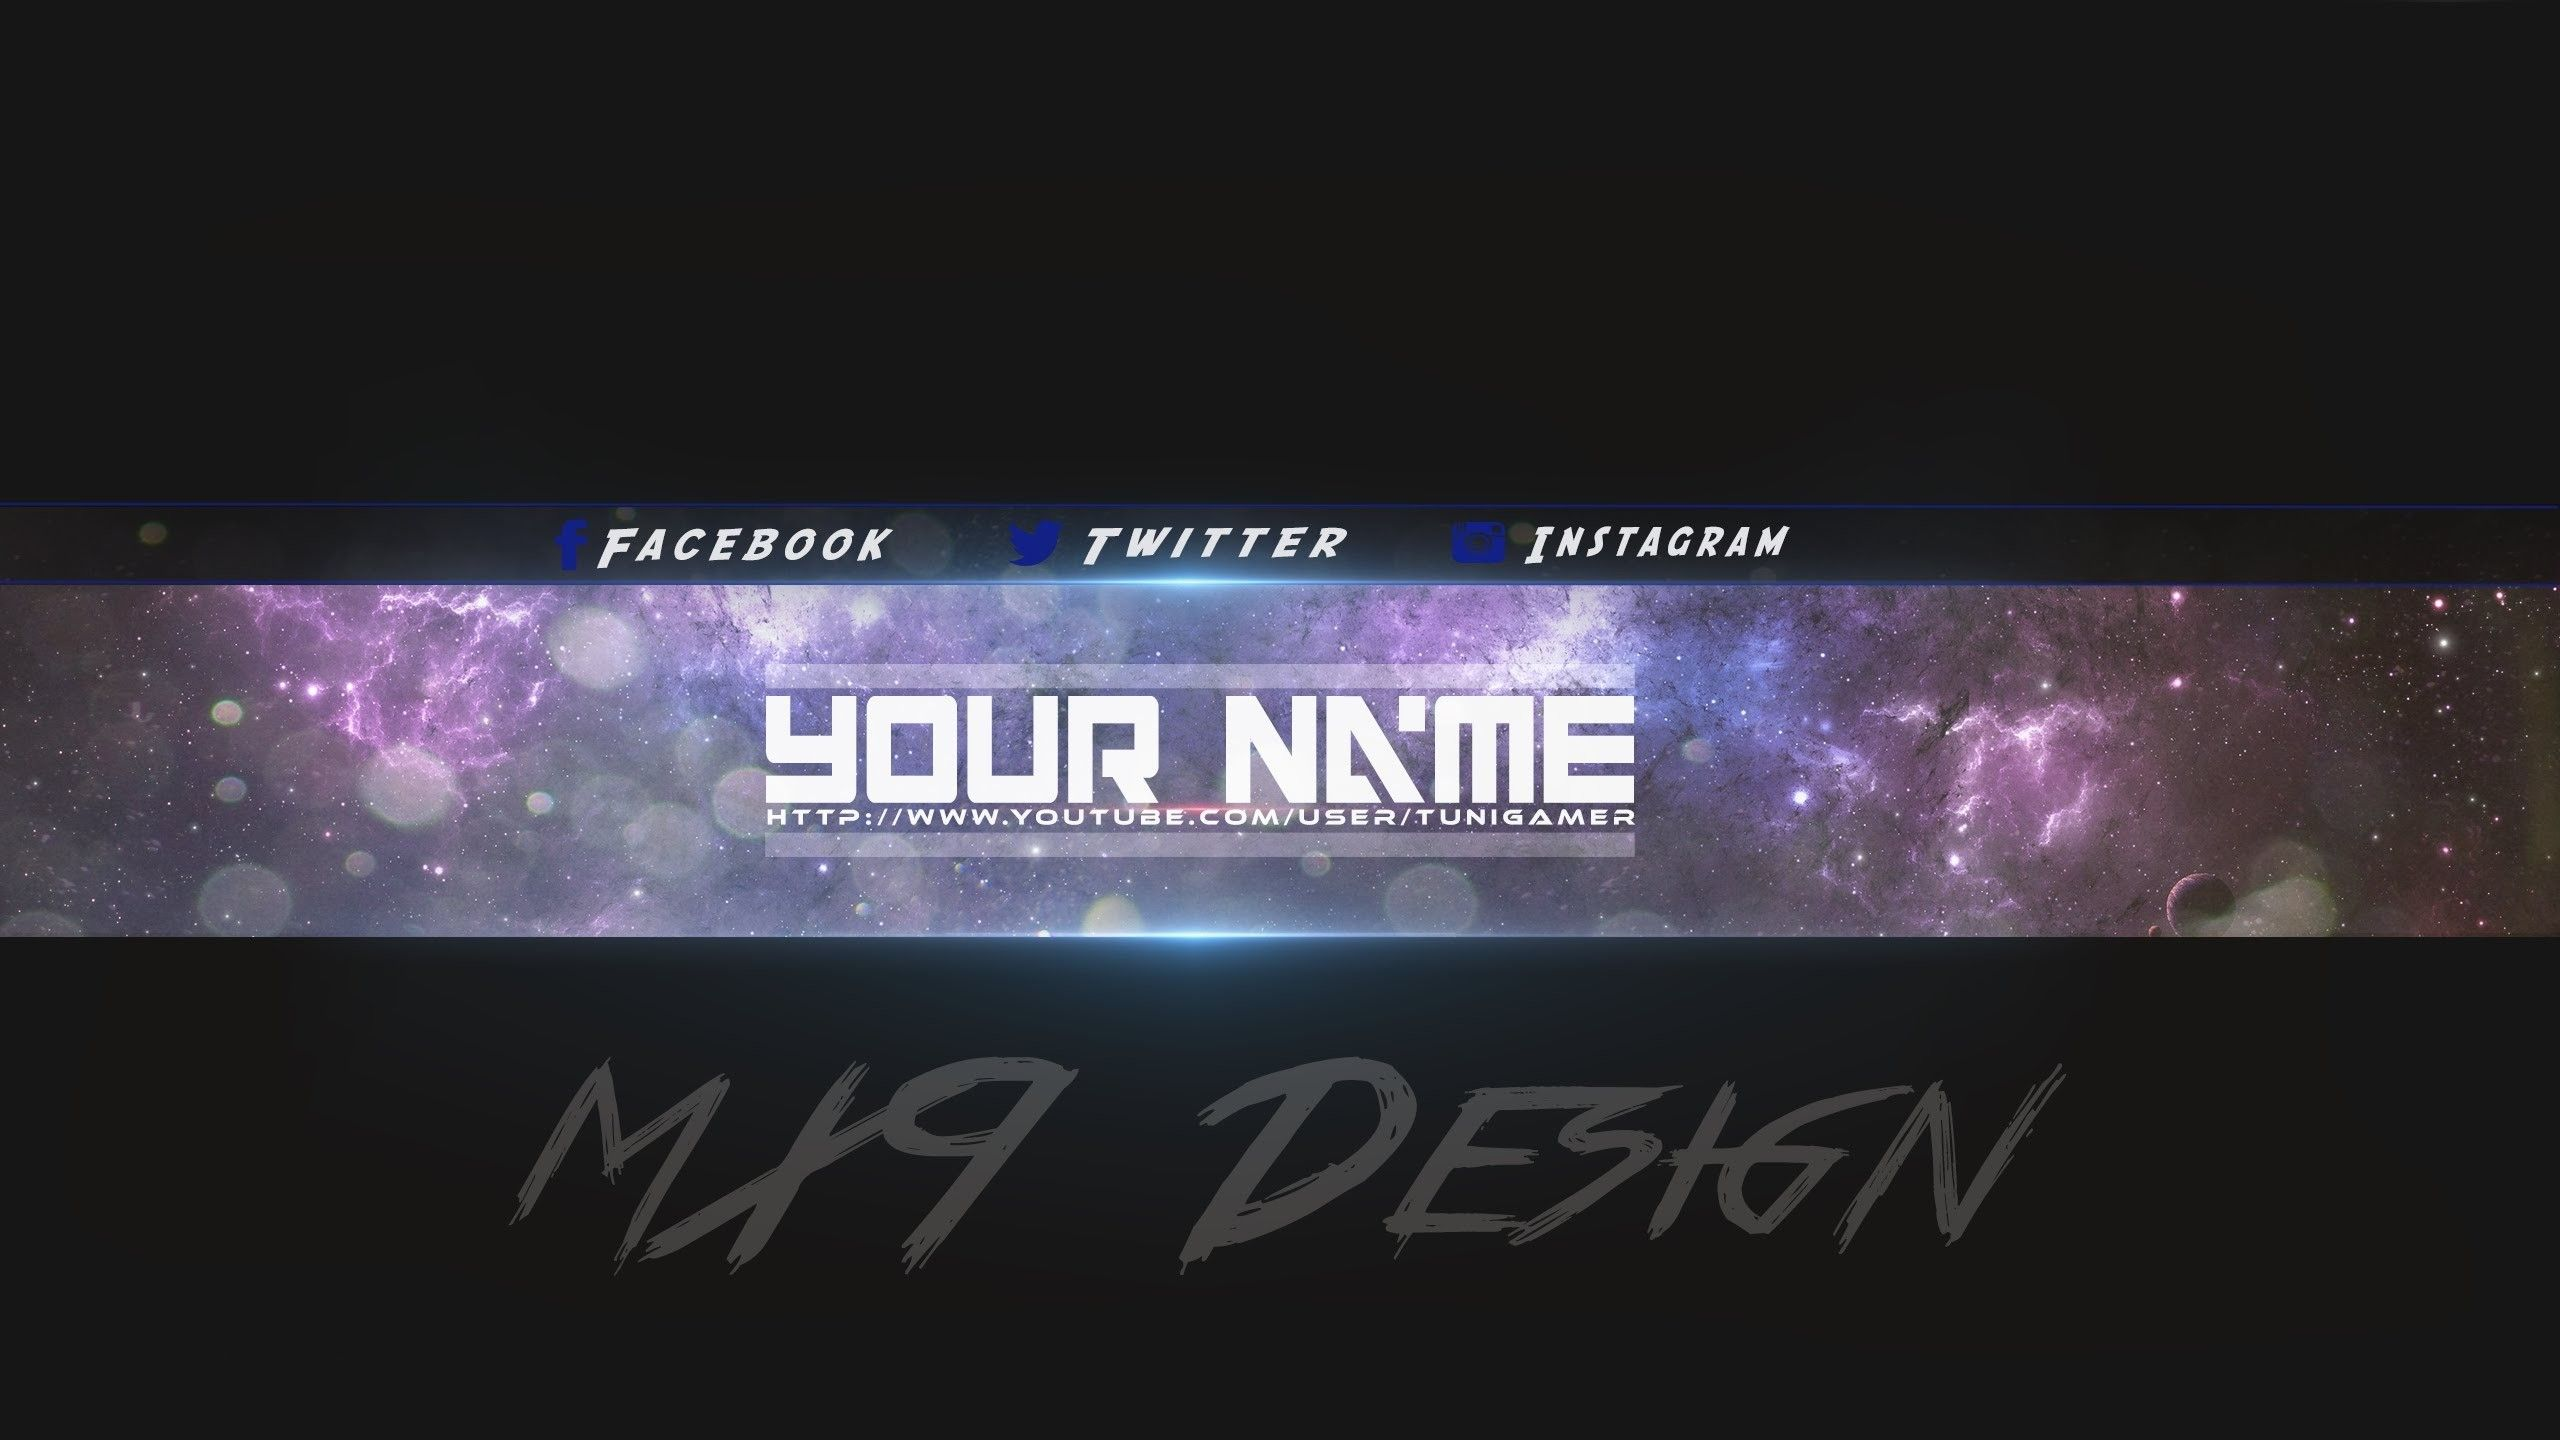 2560x1440 Speedart Free Amazing Youtube Channel Banner Template 3 Direct Download Link Youtube Youtube Banner Template Youtube Banners Banner Template